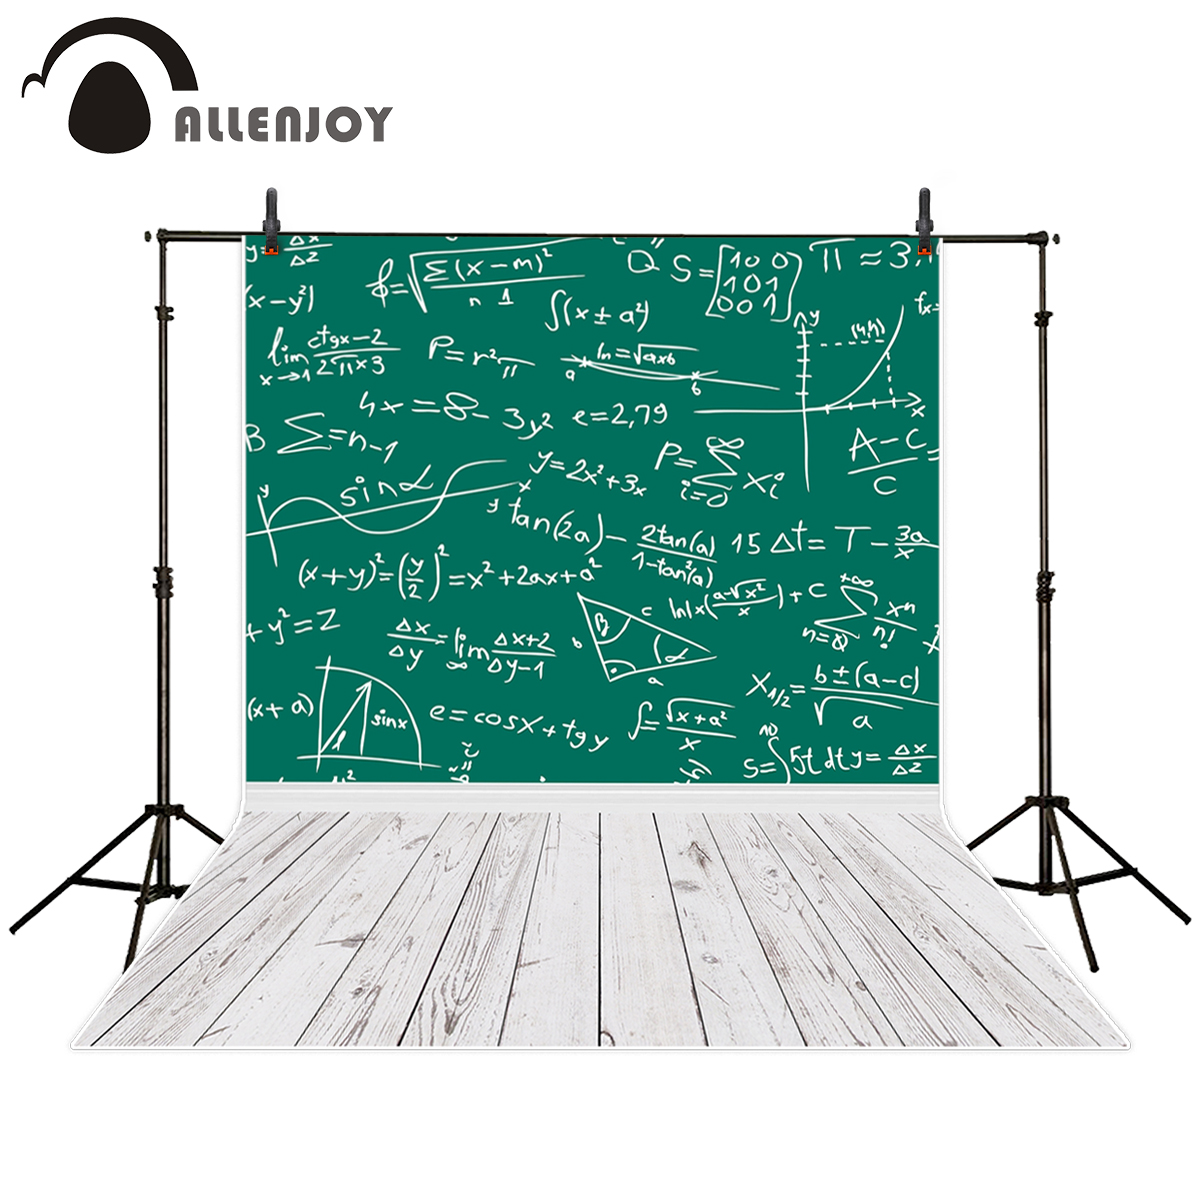 Allenjoy background for photo studio school chalkboard study student wood floor backdrop photobooth photocall newborn idt71256 sa35sog1 automotive computer board